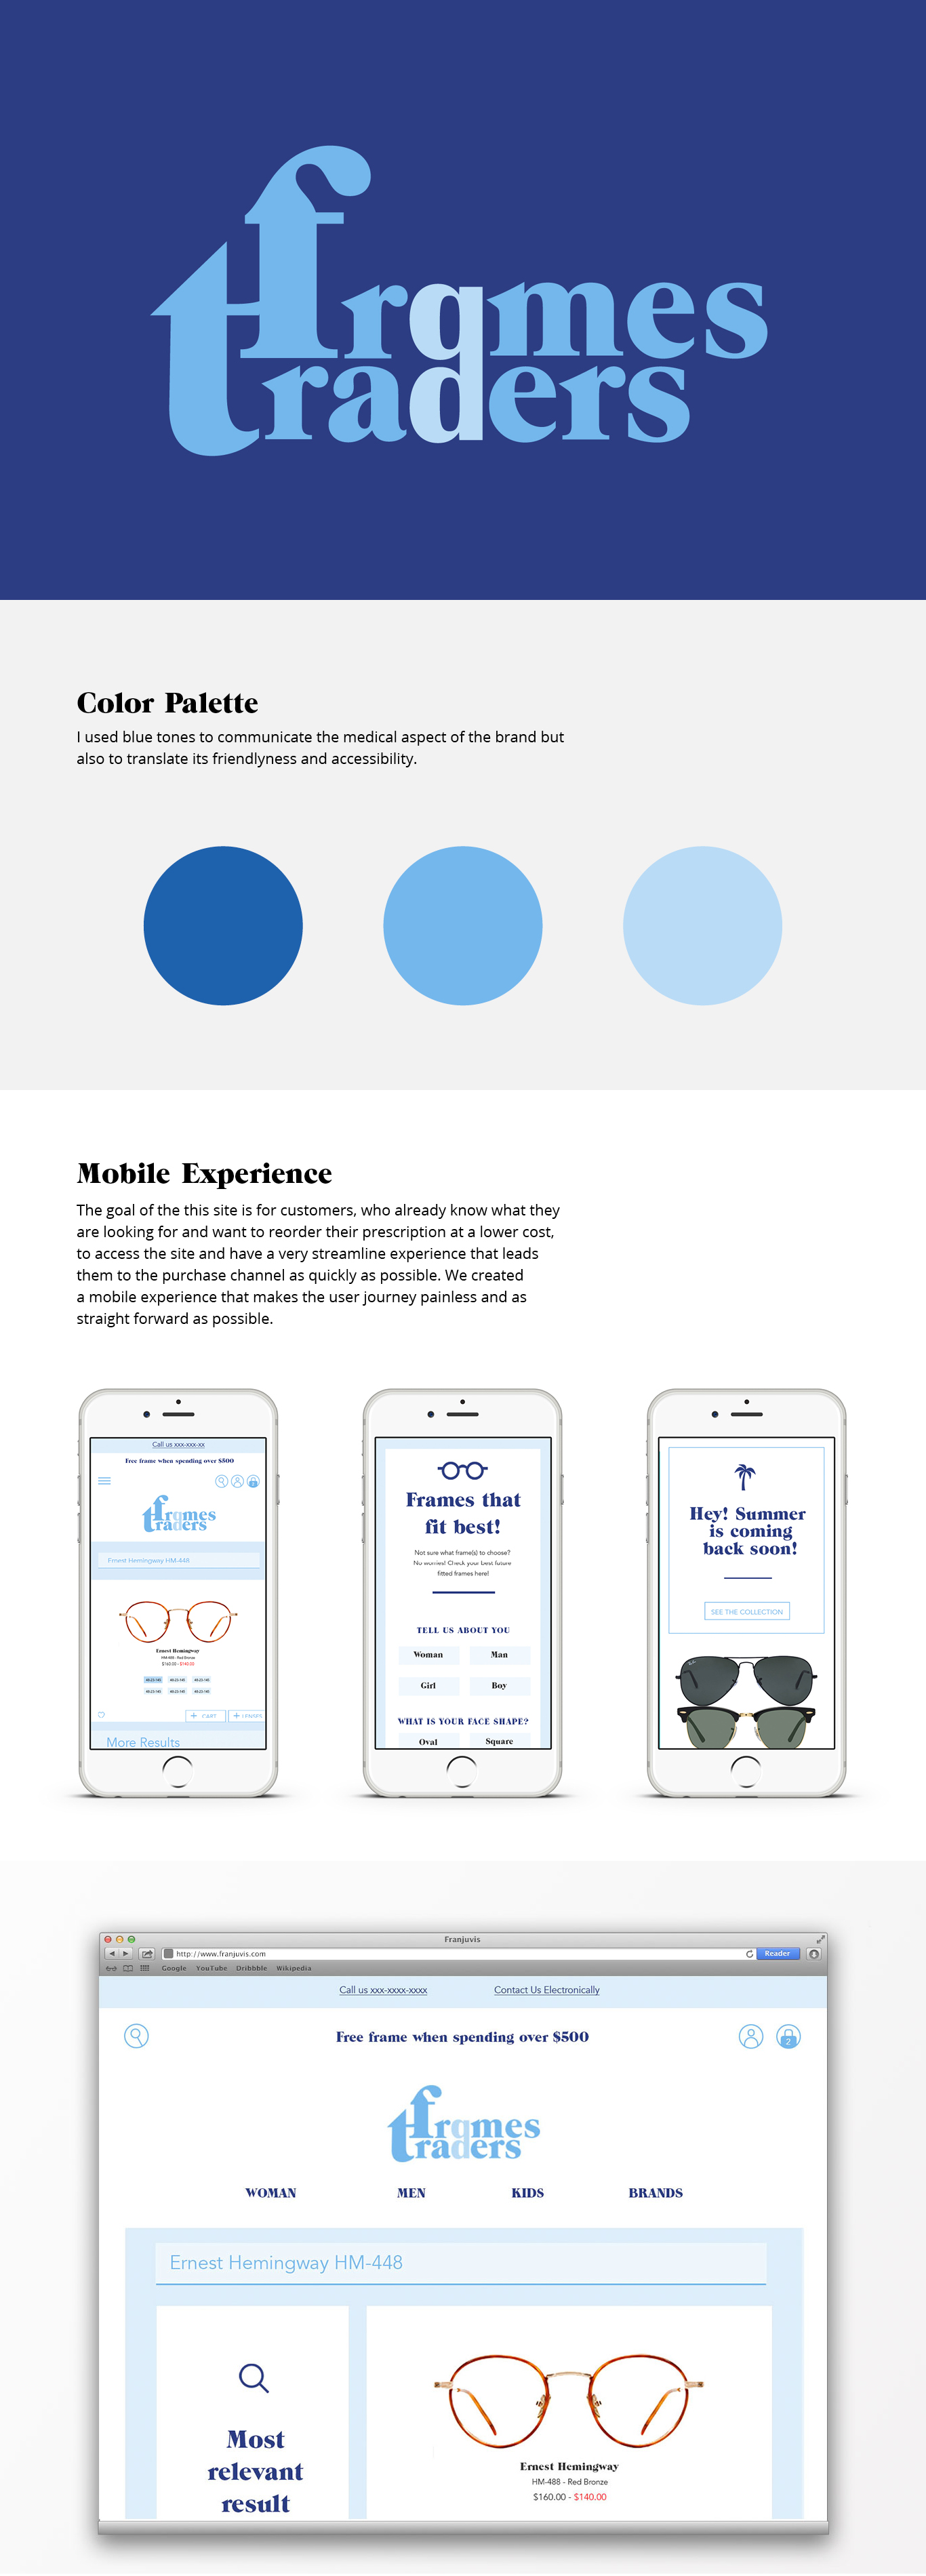 Color palette and mobile experience.jpg